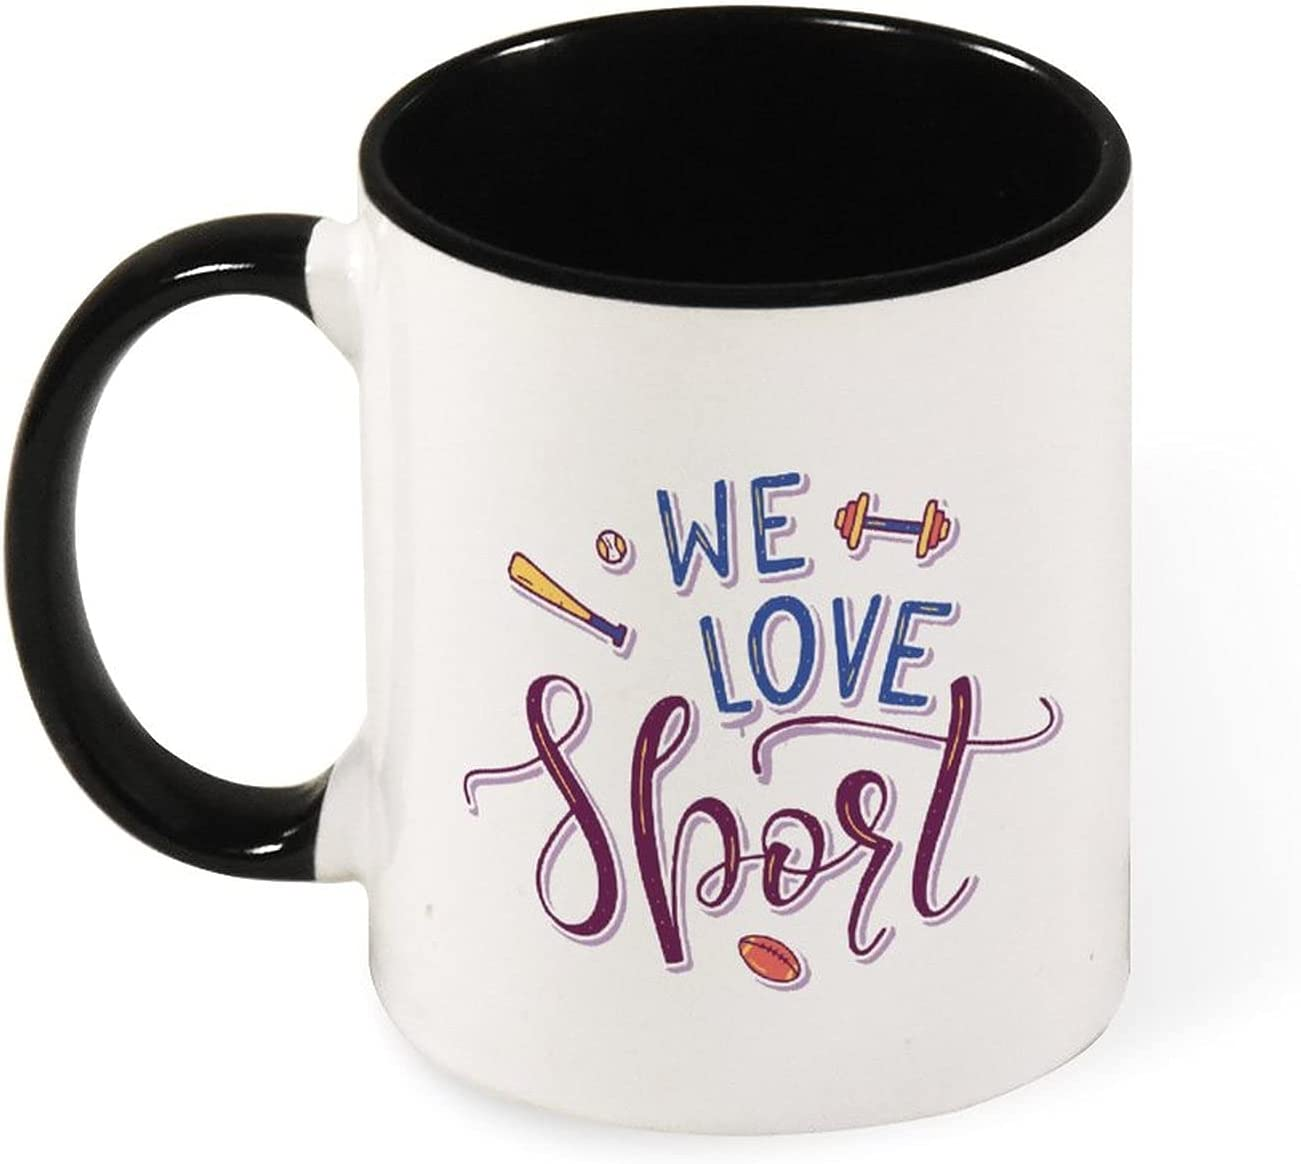 Ceramic coffee cup for cappuccino Outlet sale feature store latte tea Spor hot Love or We